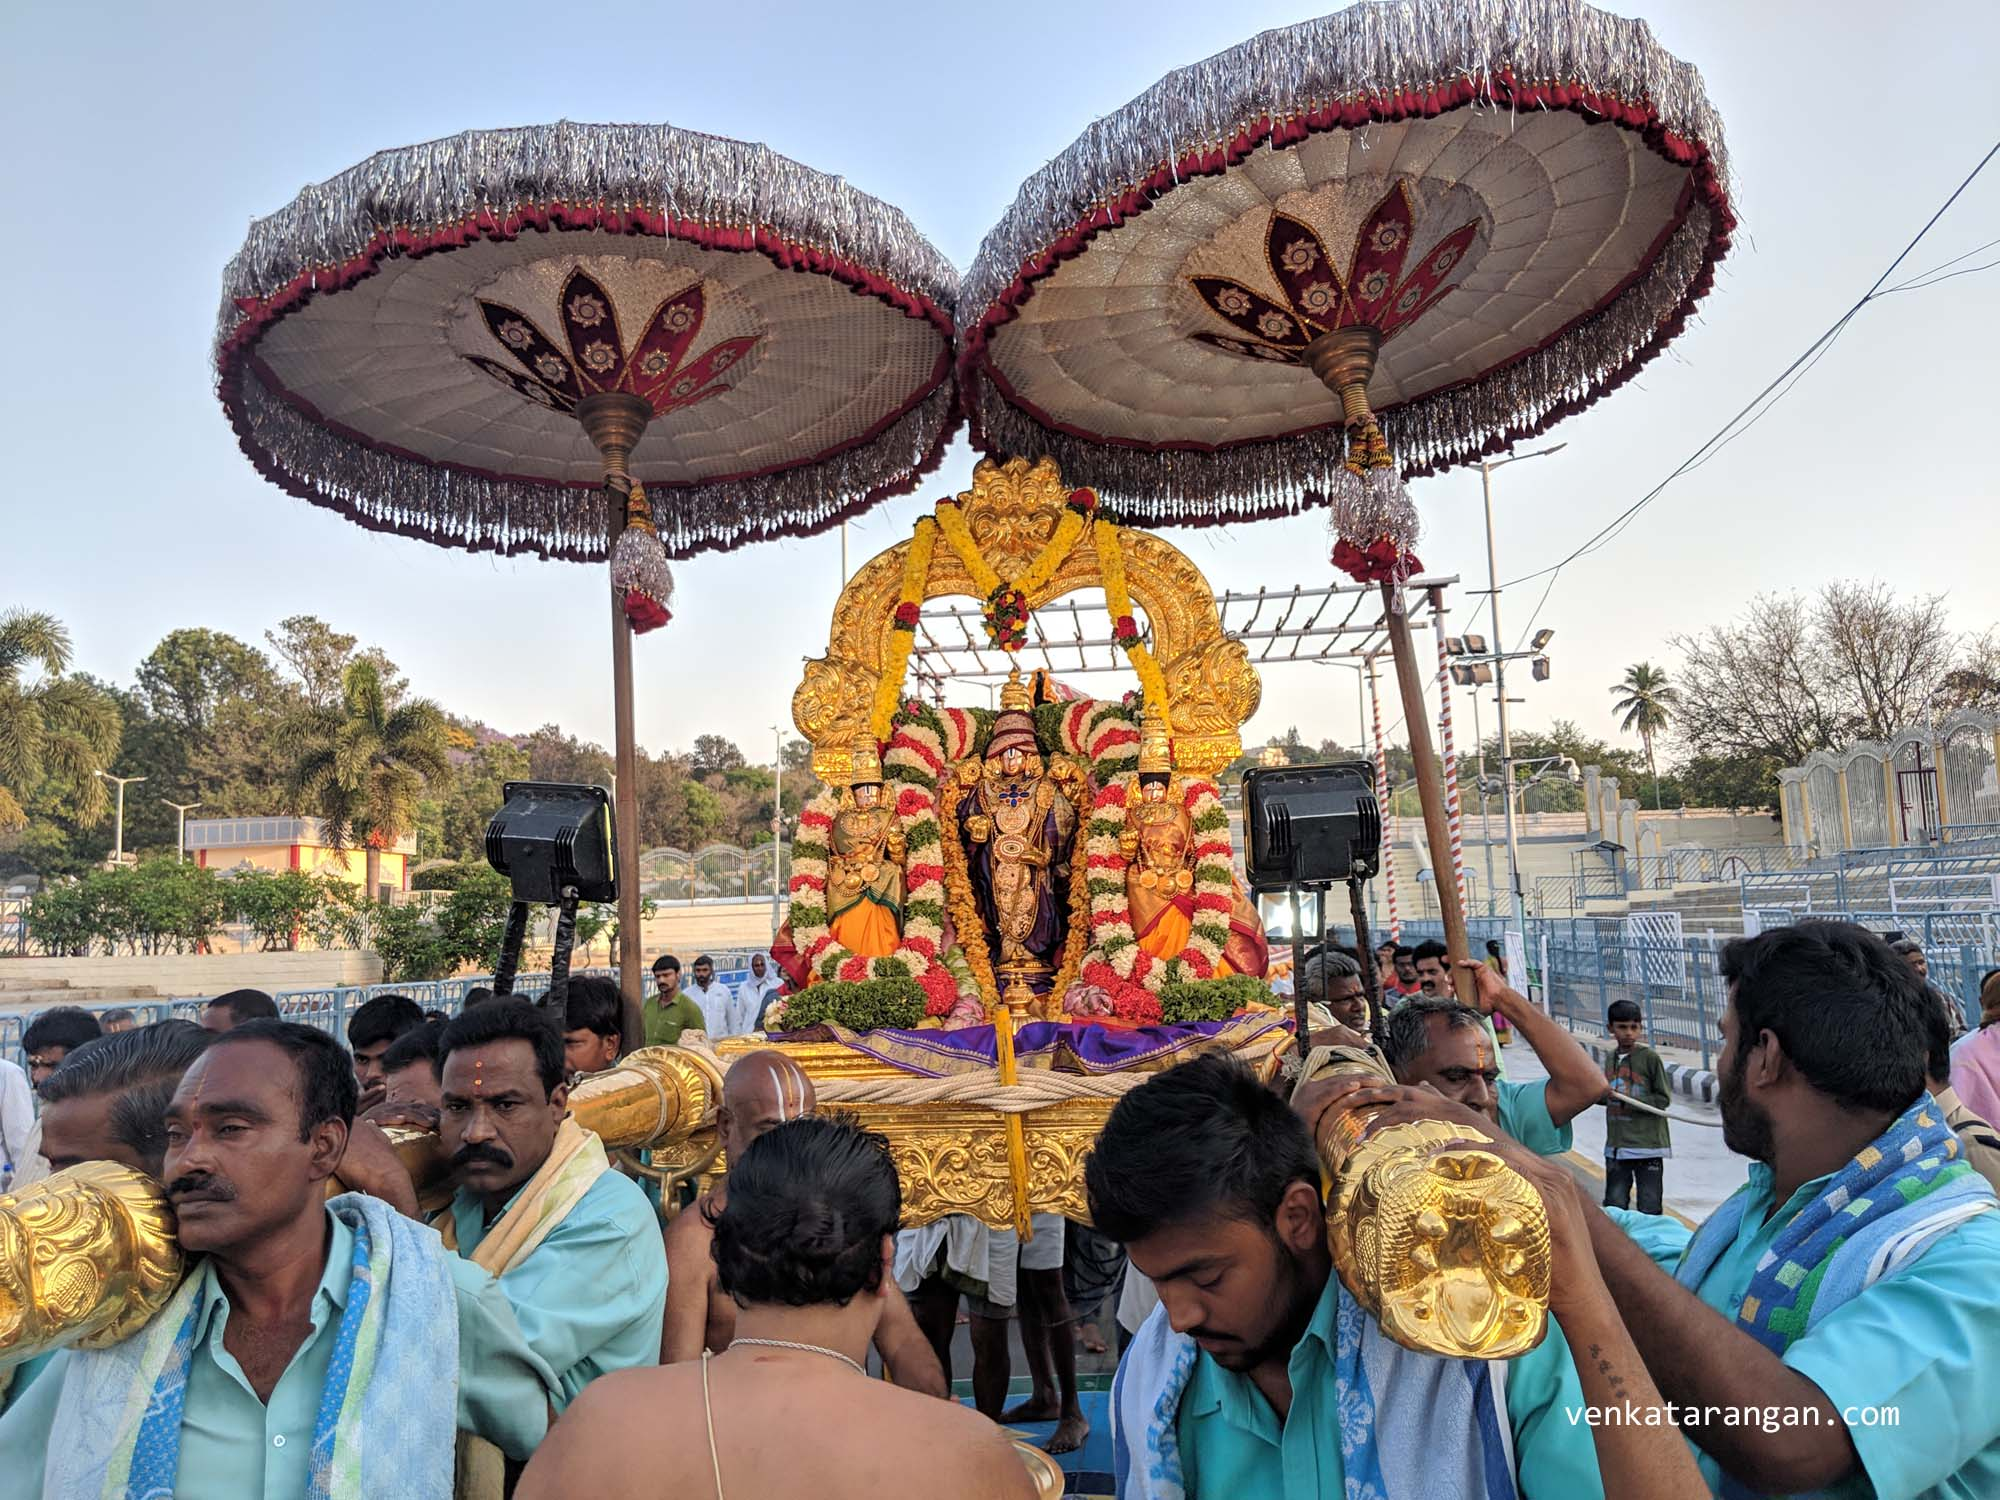 Procession of Goddess Sridevi, Lord Malayappa Swamy and Goddess Bhudevi